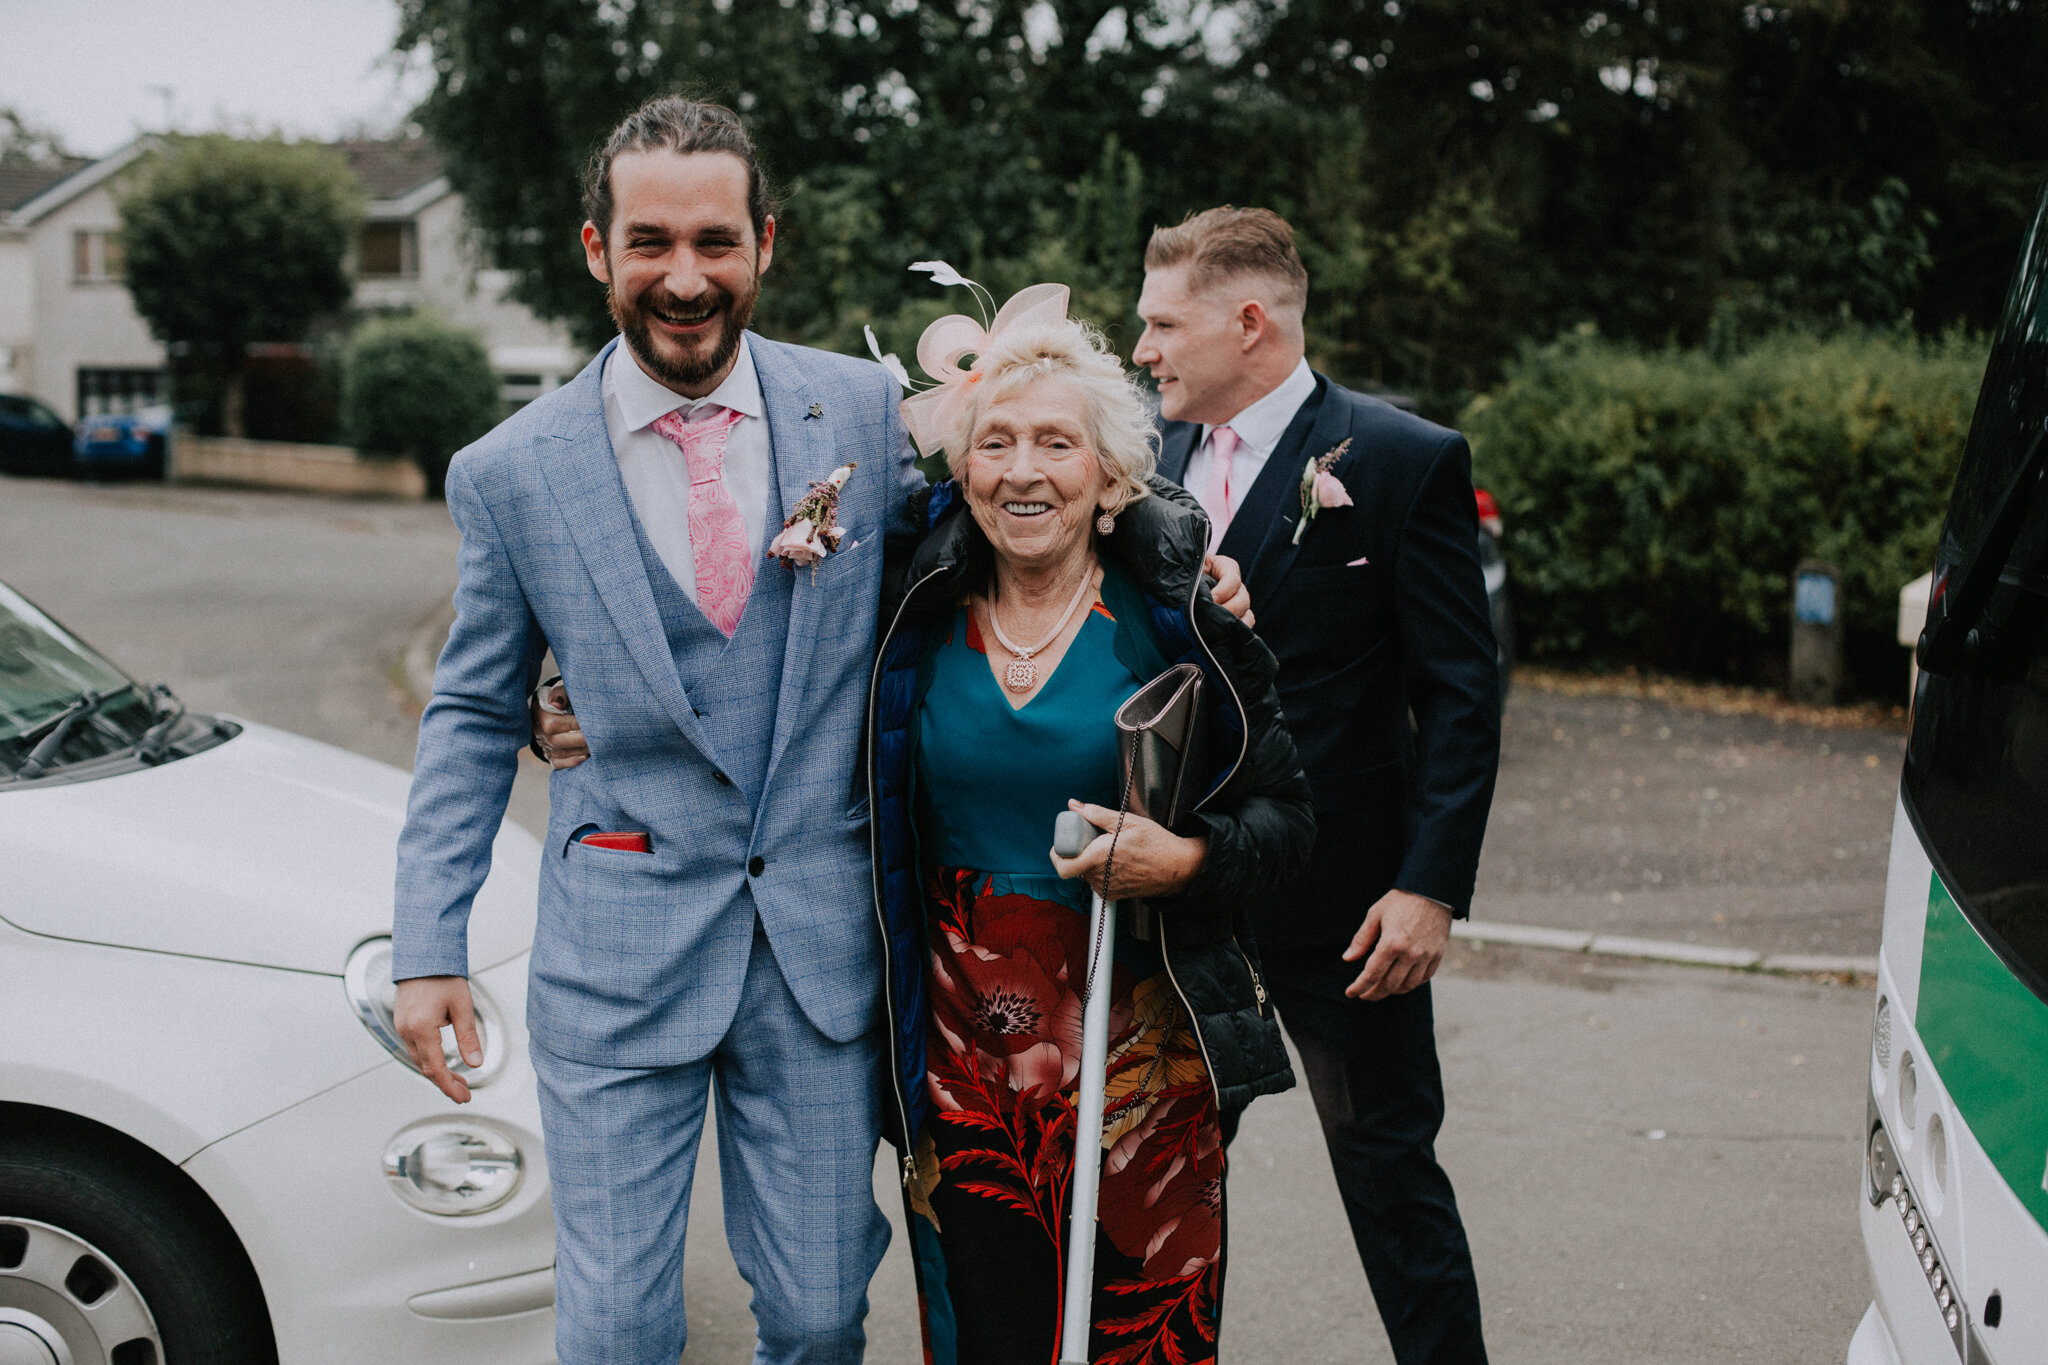 Granny with the groom are on the way to the wedding bus